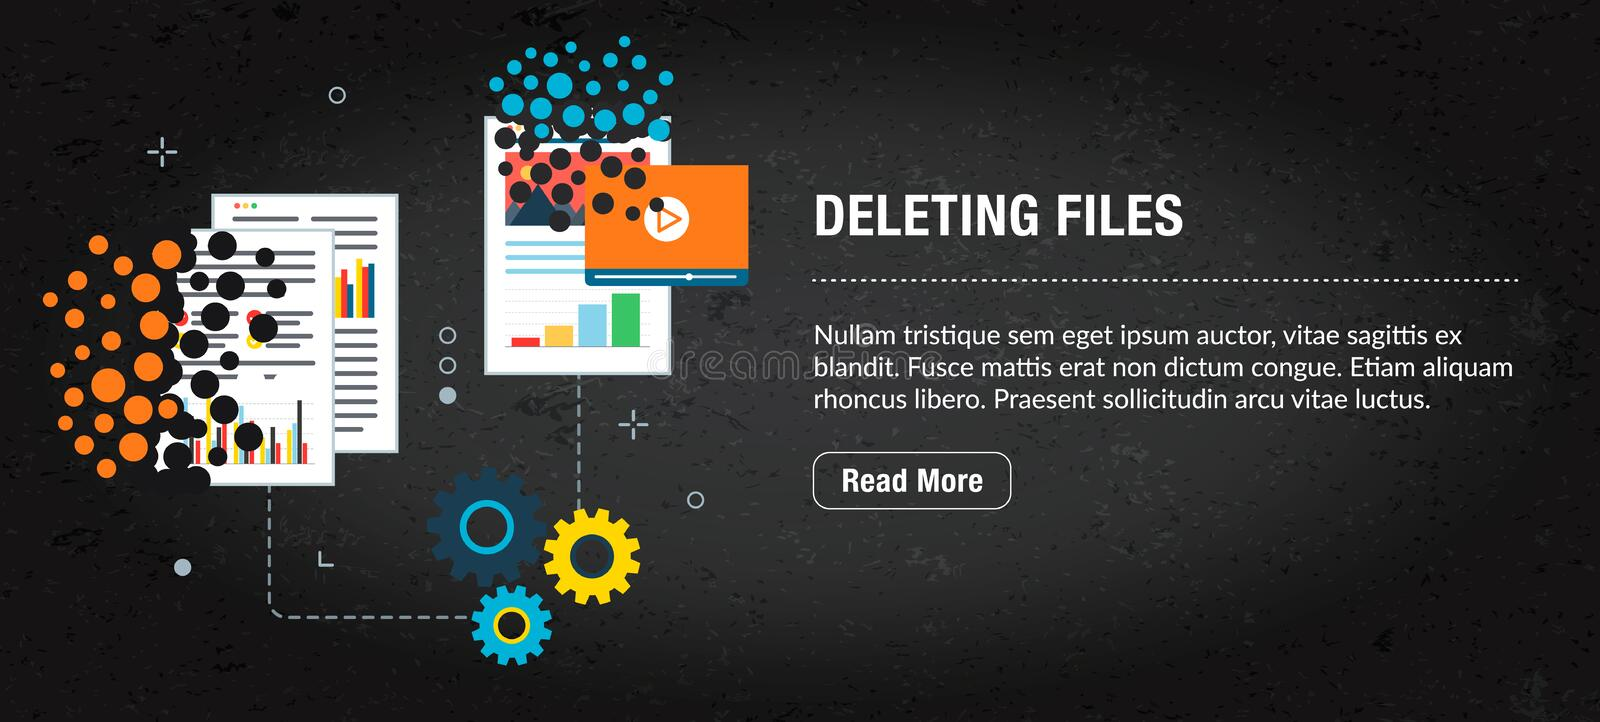 Deleting files, banner internet with icons in vector royalty free illustration